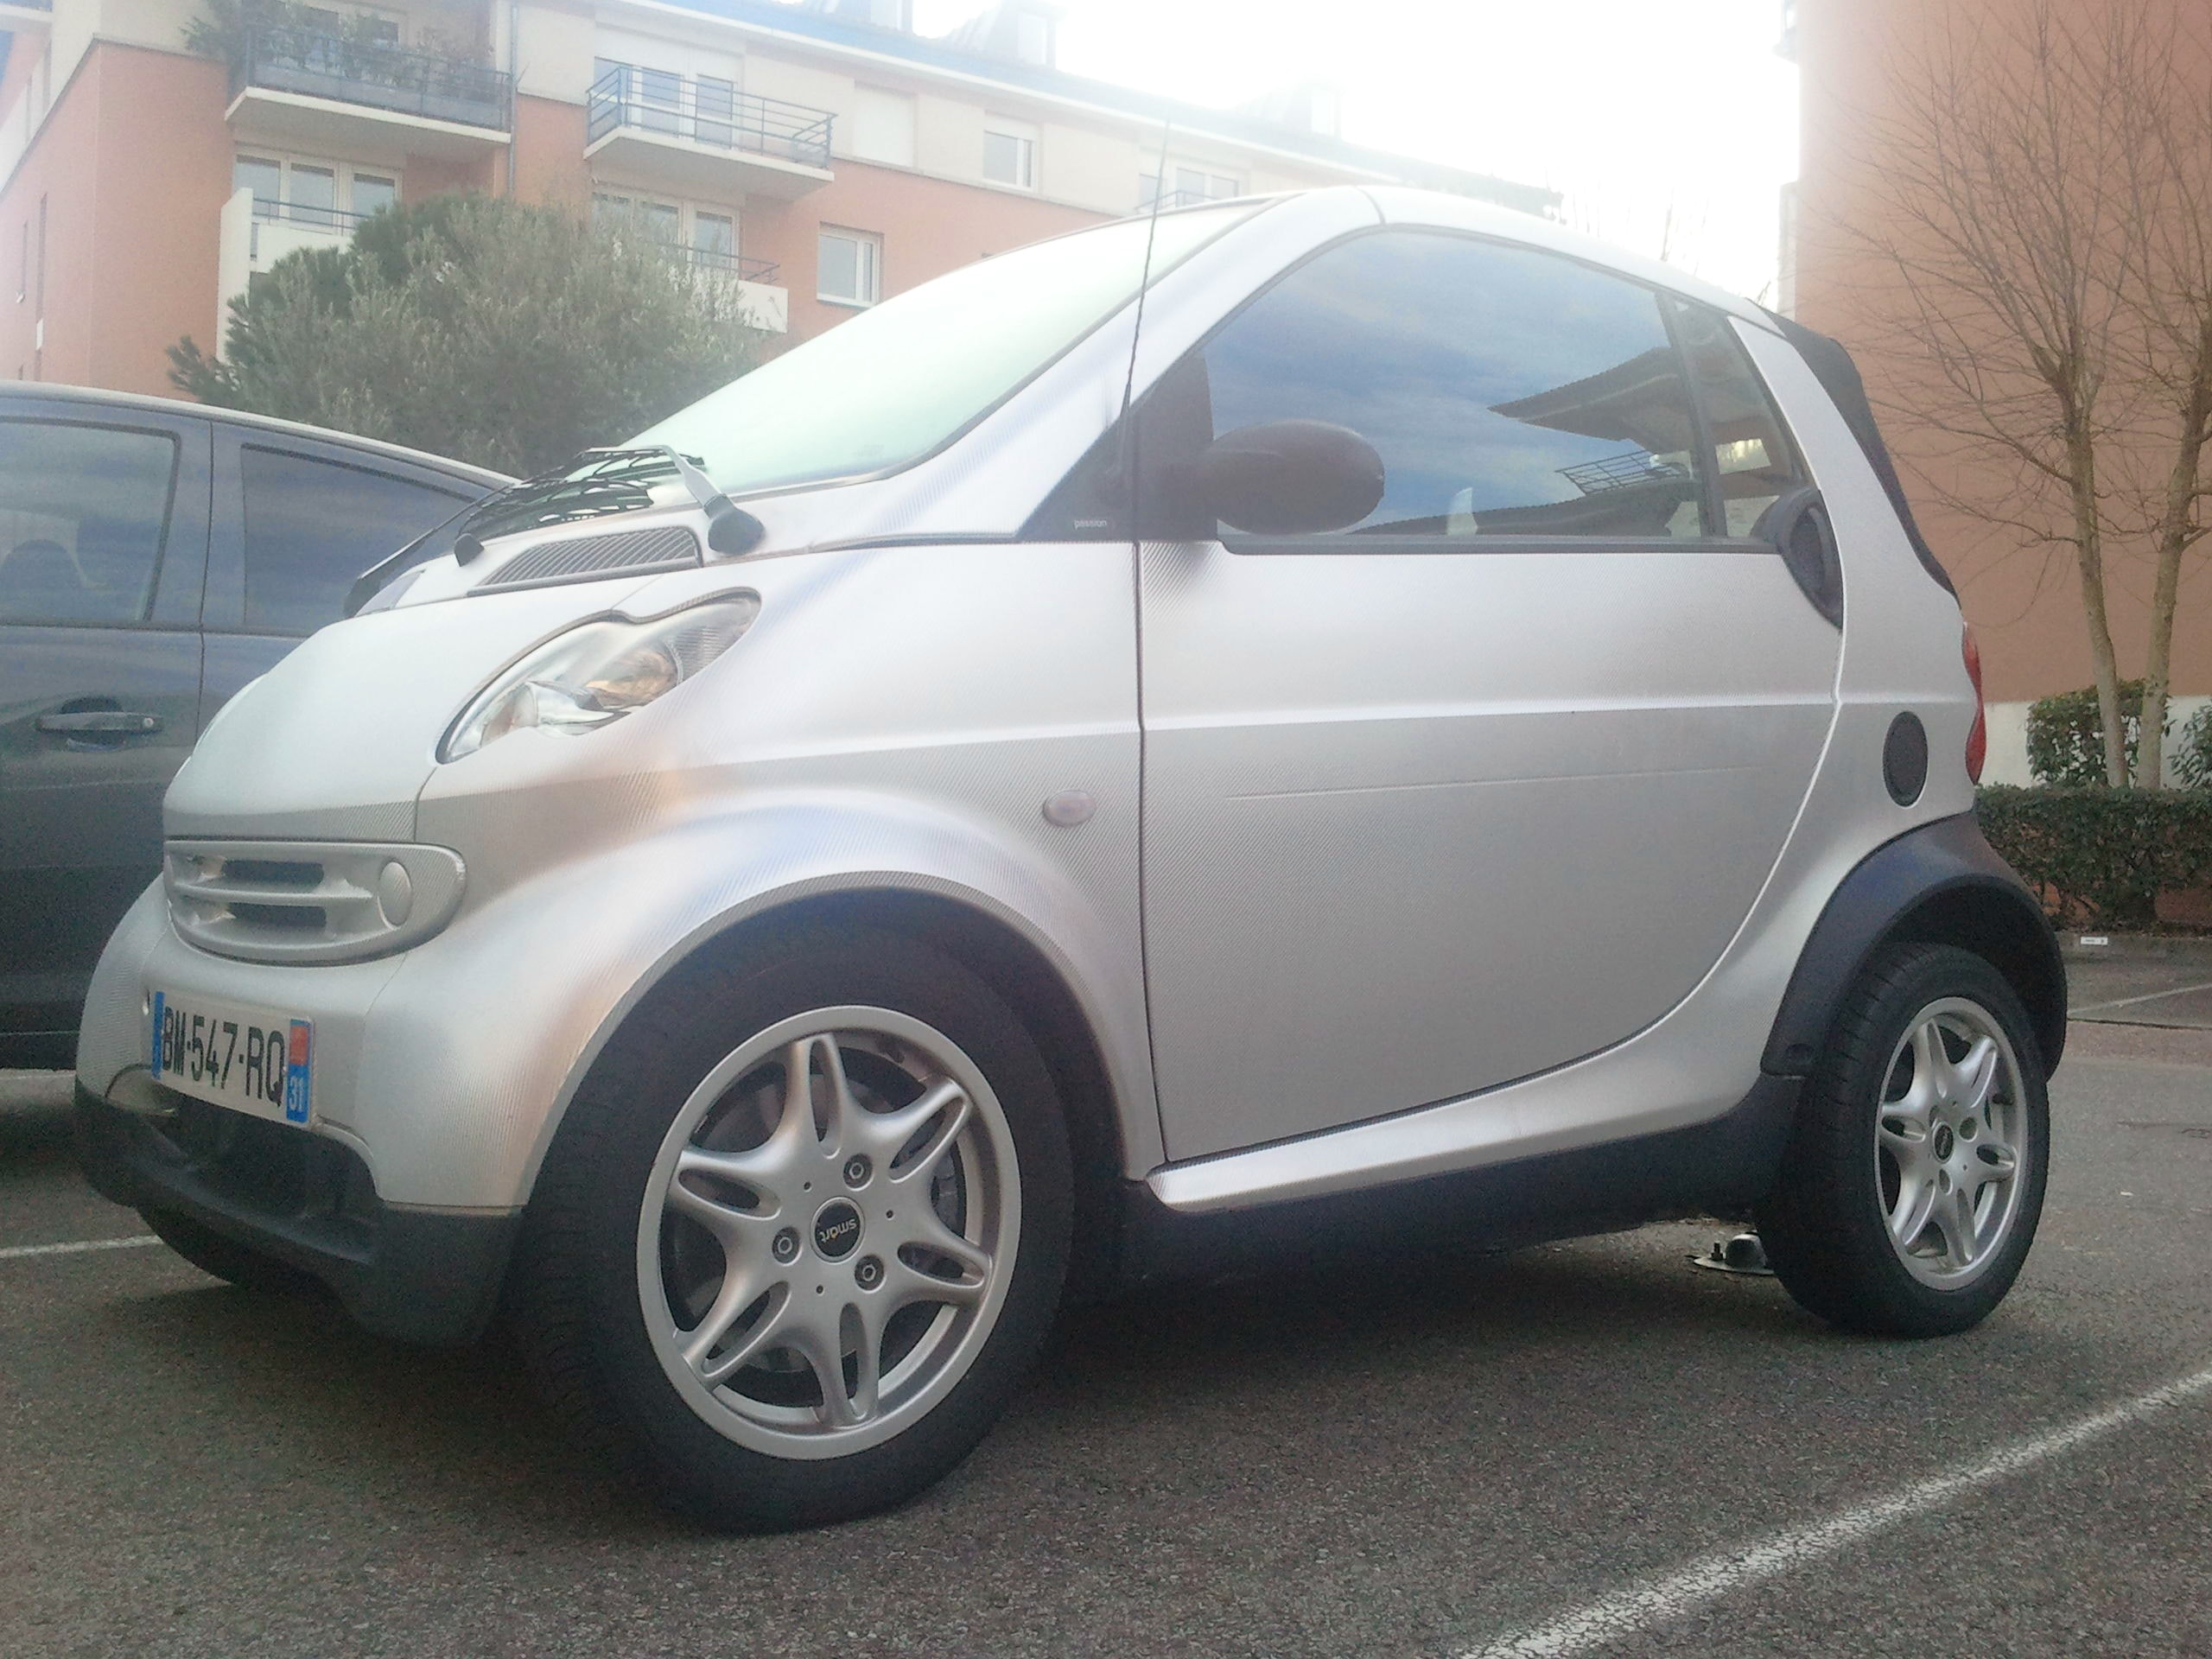 Smart Fortwo Cabriolet - Dispo à l'Aéroport, 2003, Essence, automatique - Cabriolet Toulouse (31)